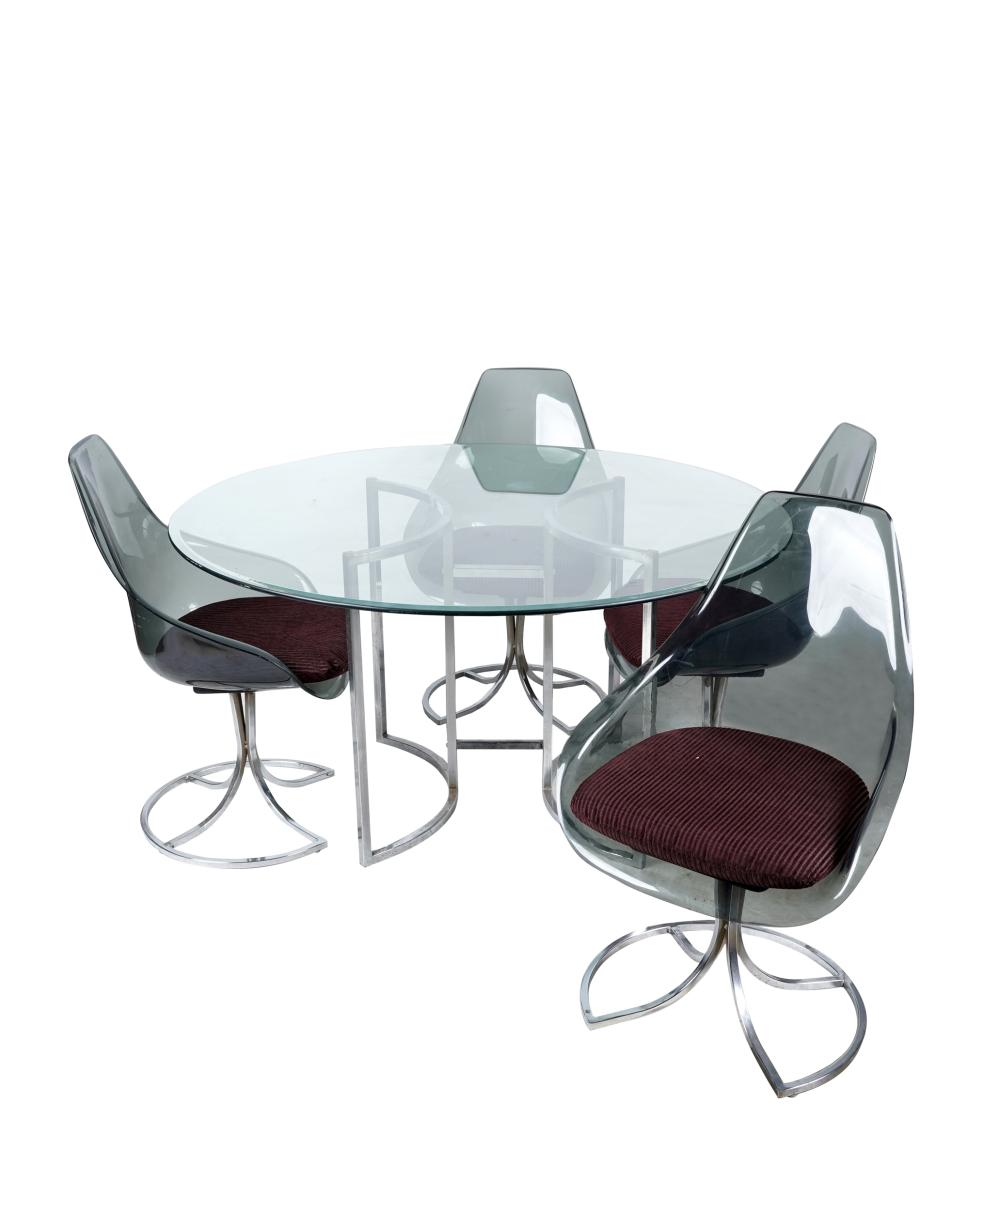 CONTEMPORARY DINING TABLE & FOUR CHAIRS